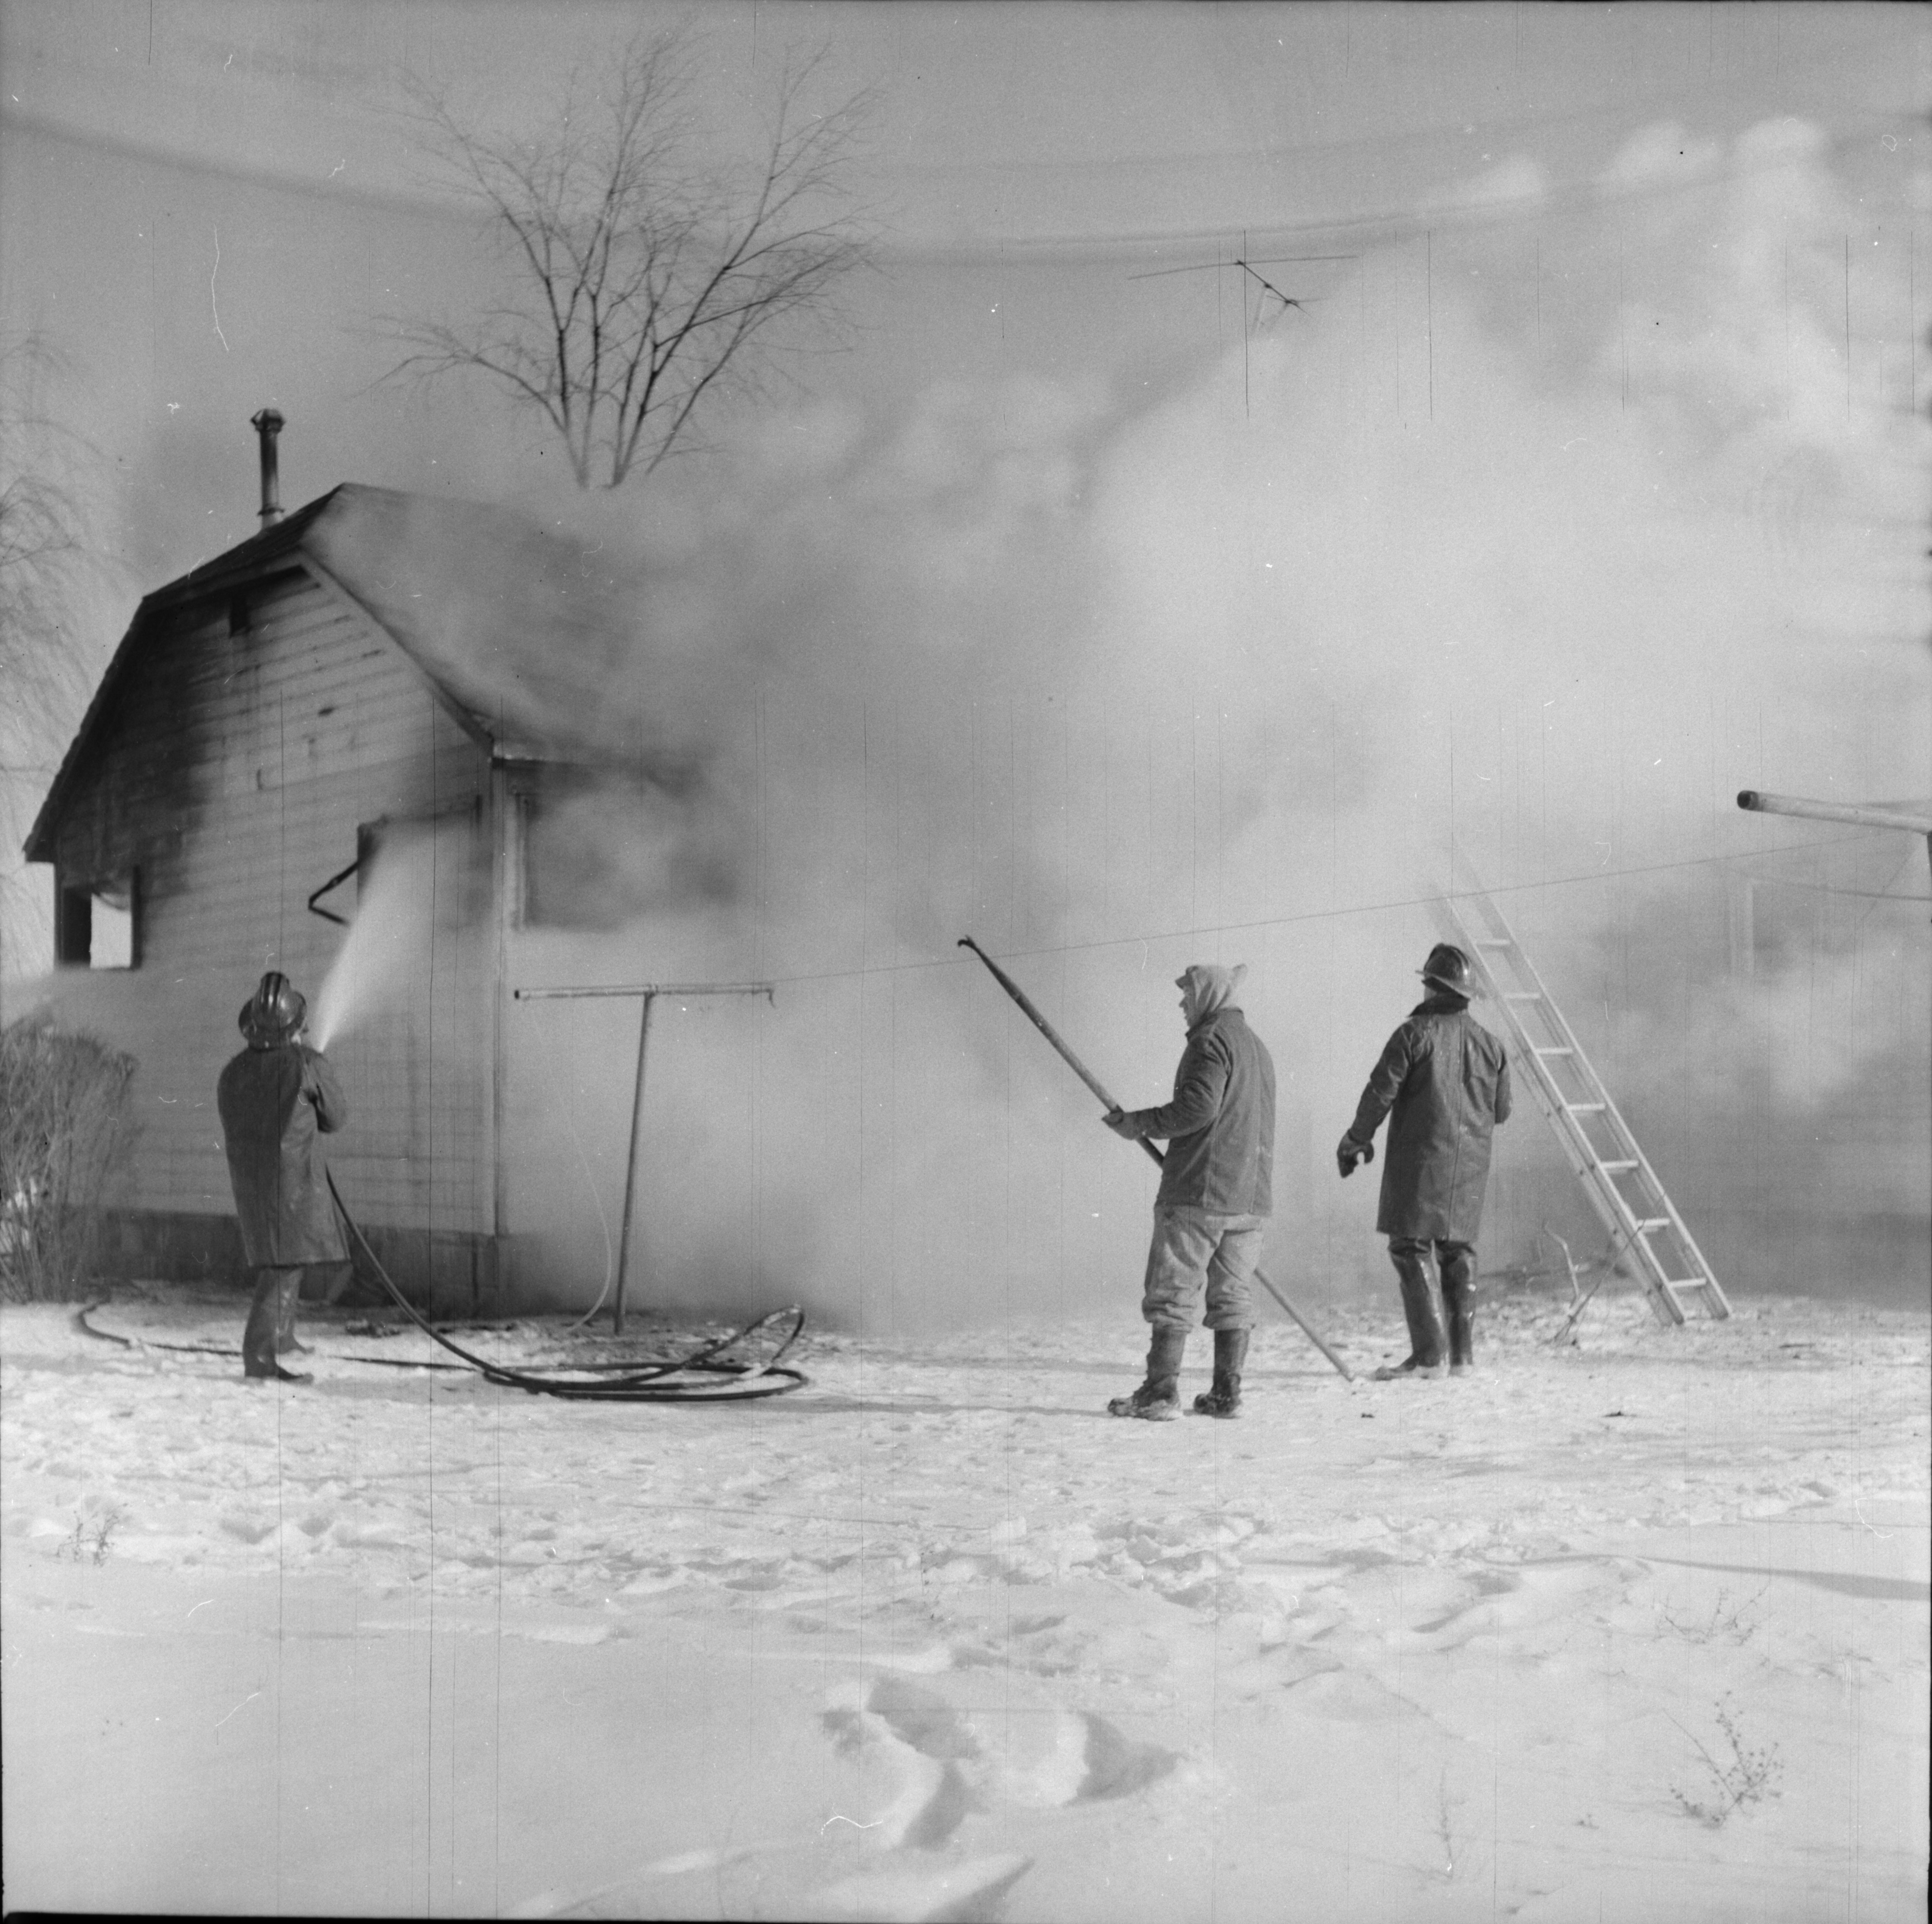 Firemen Work to Put Out Fire at Home on Ellsworth Rd, February 1965 image